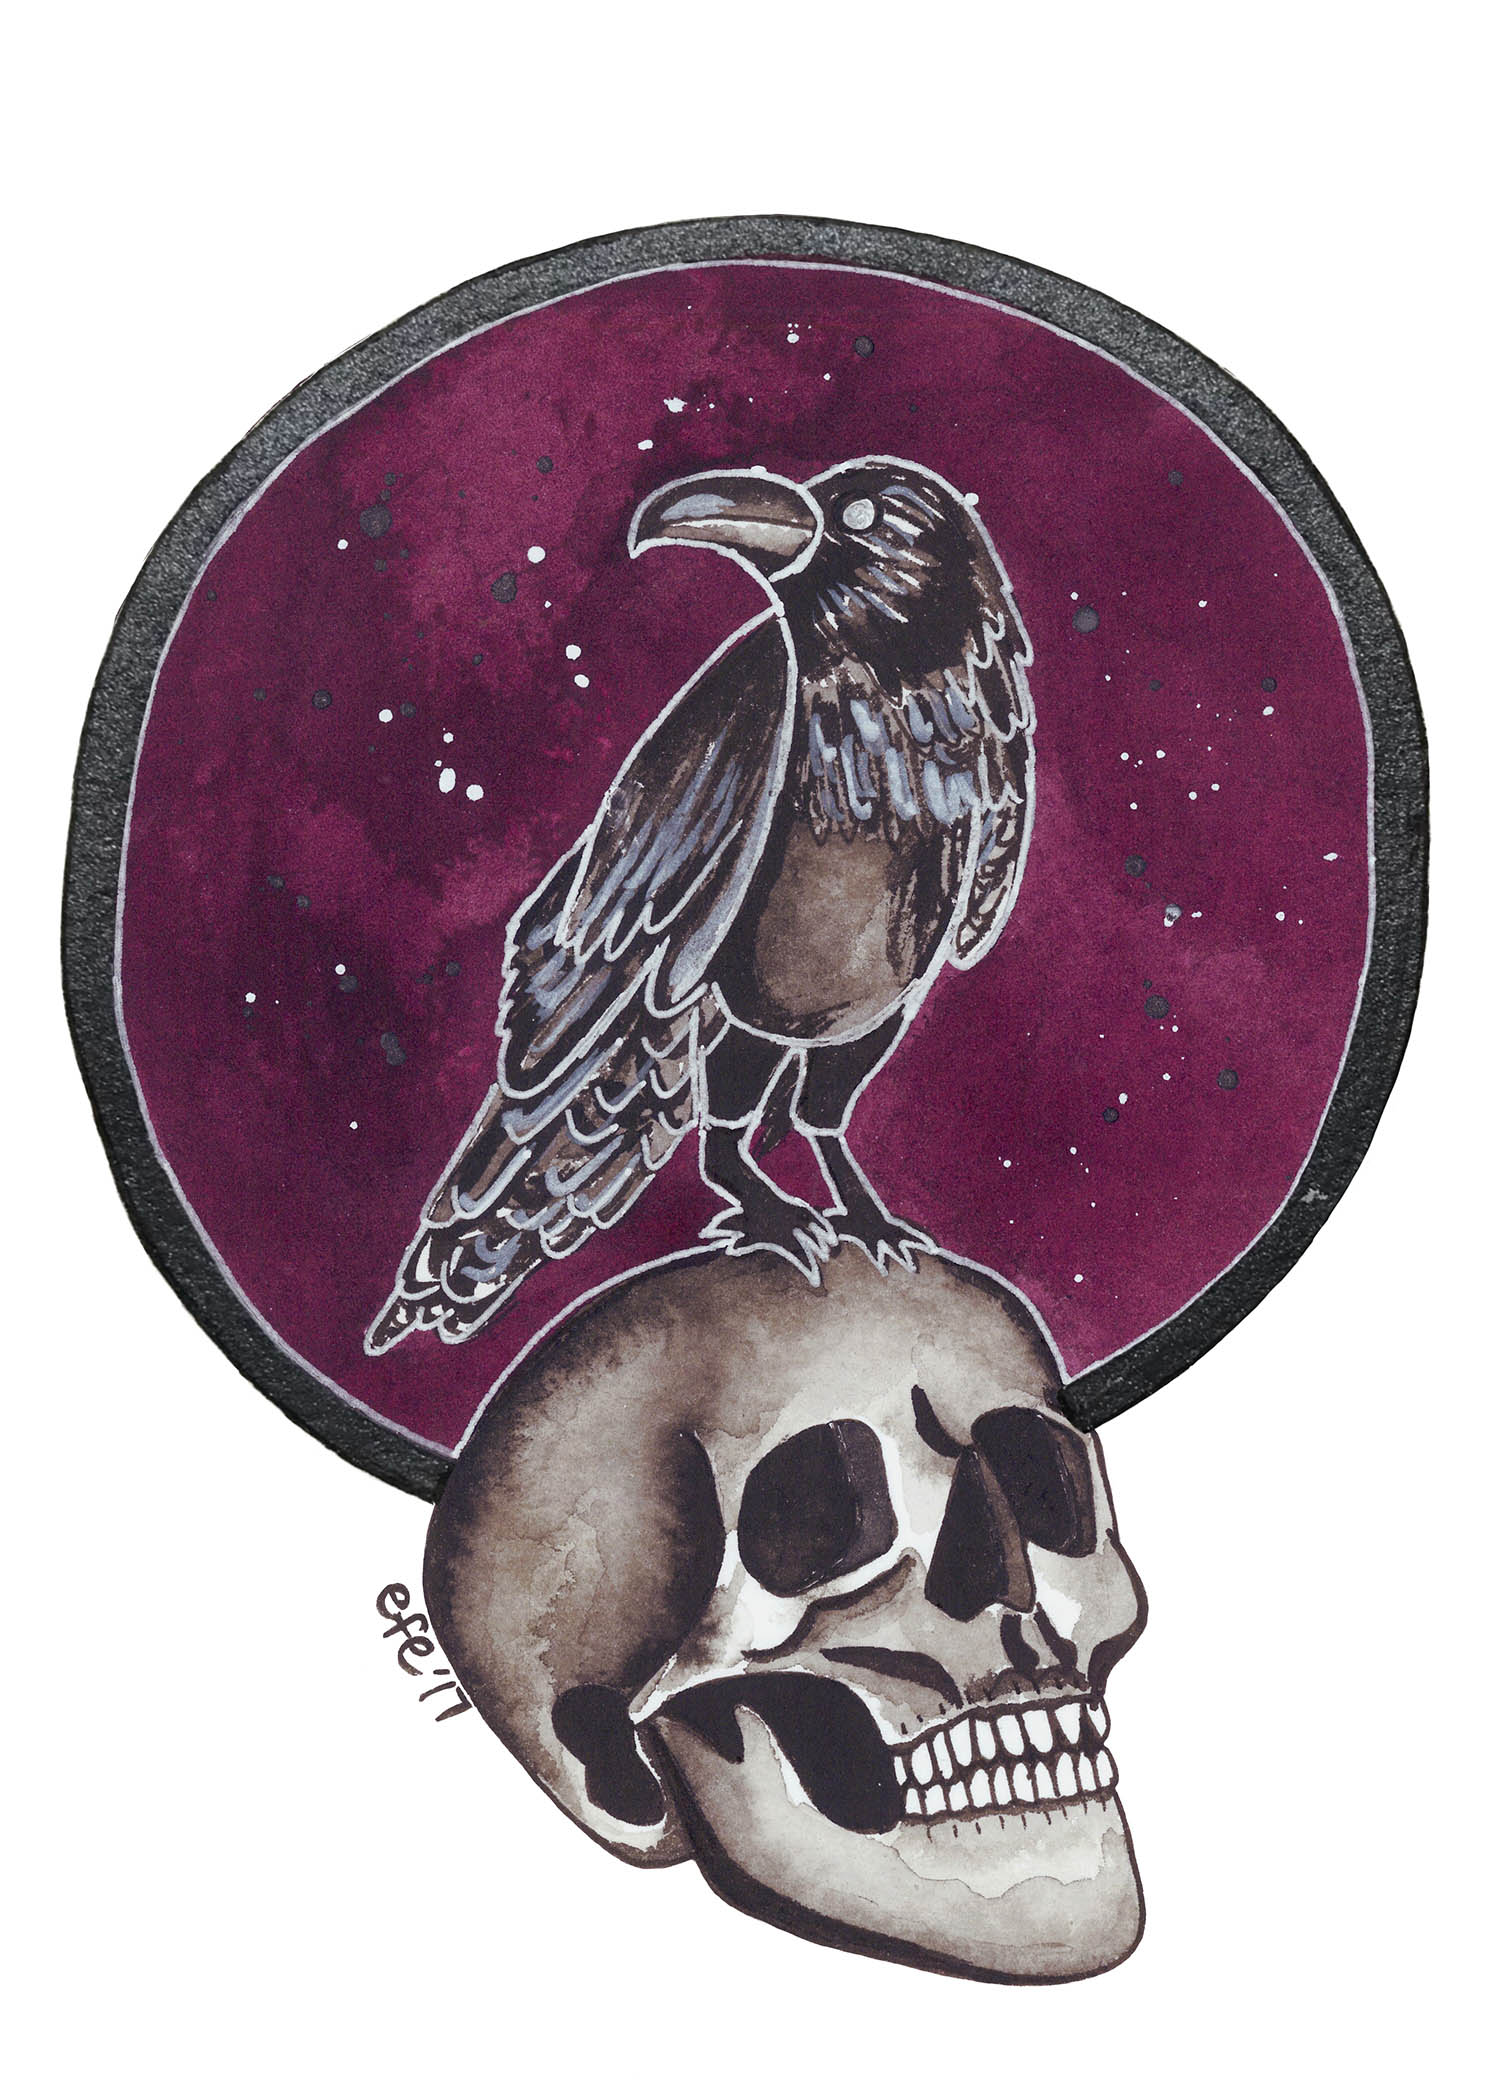 Day 04 - The Raven